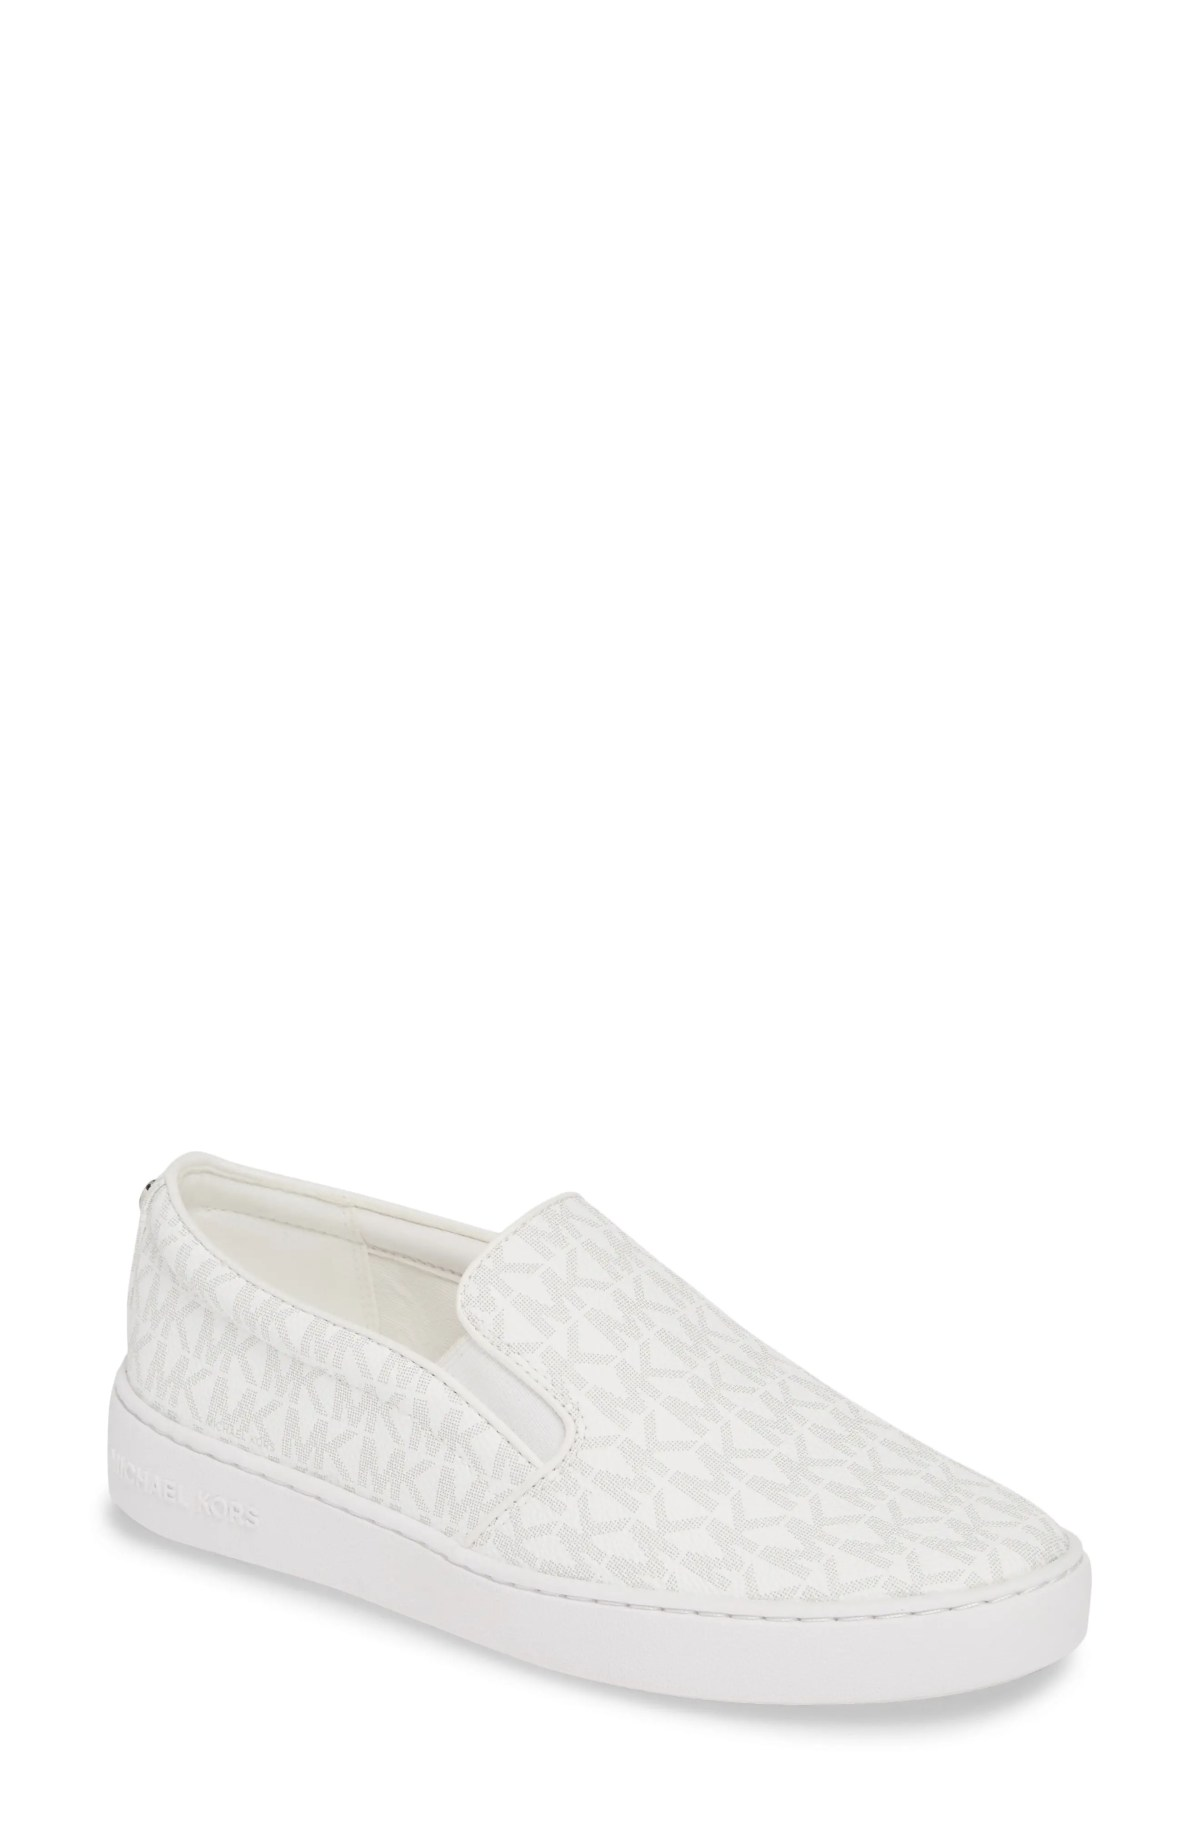 MICHAEL MICHAEL KORS Keaton Slip-On Sneaker, Main, color, BRIGHT WHITE FABRIC